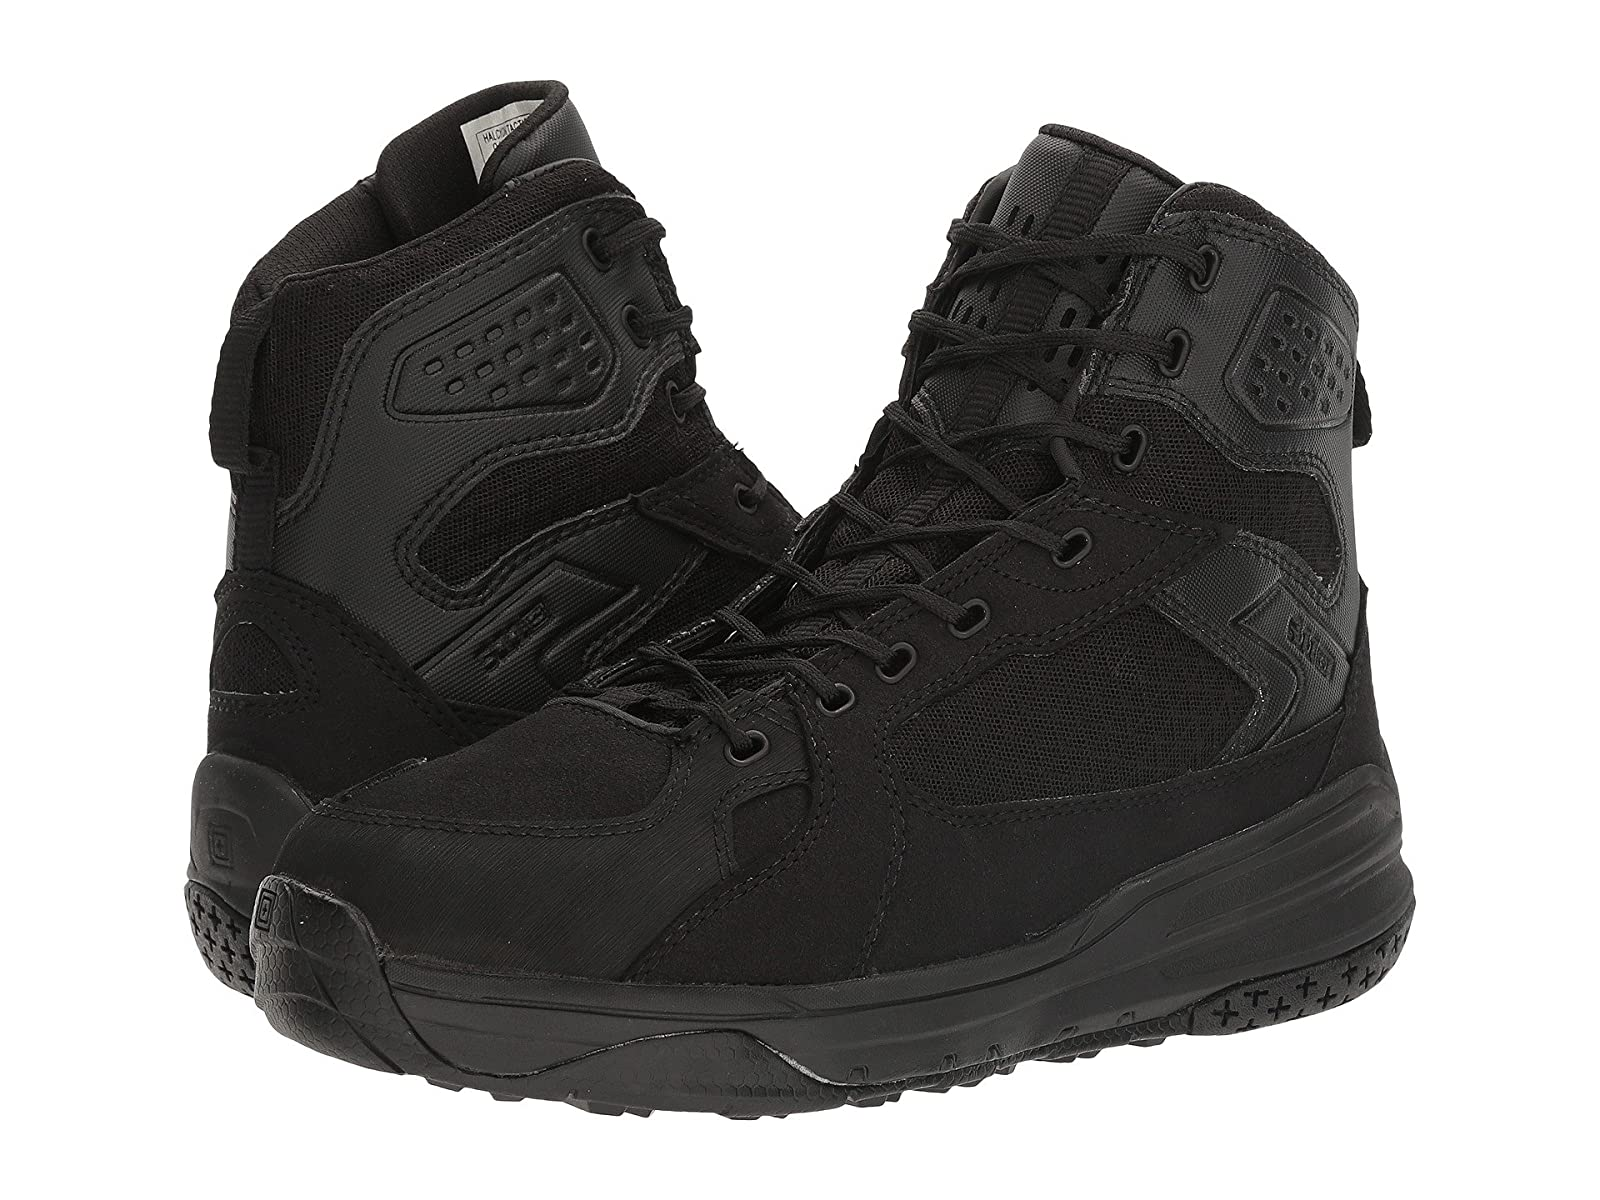 5.11 Tactical Halcyon Tactical BootsSelling fashionable and eye-catching shoes